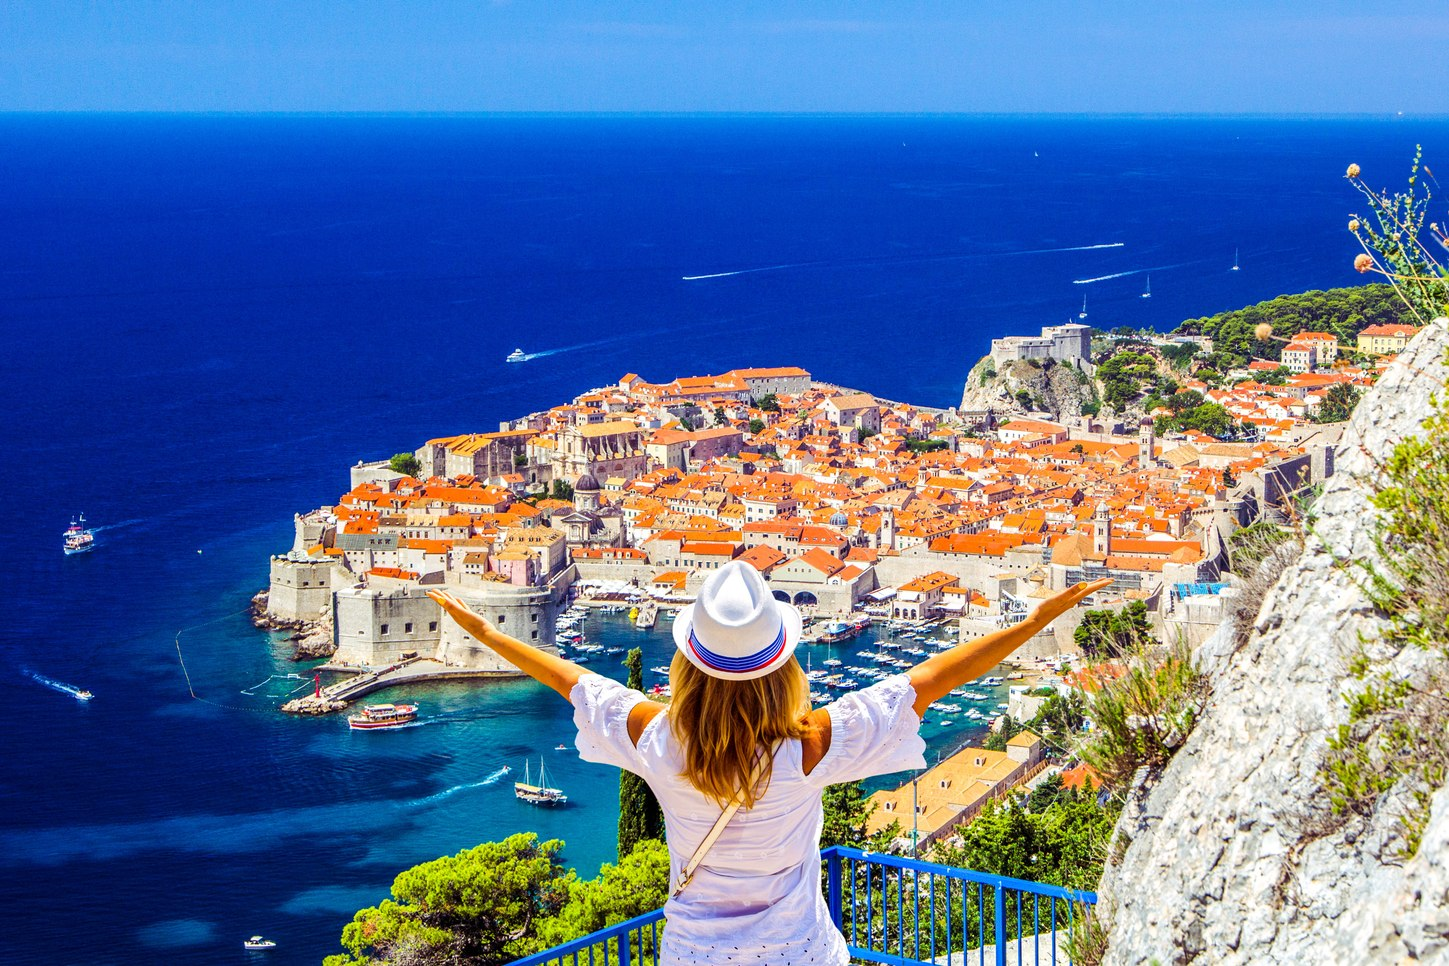 The hottest charter destinations in the Mediterranean for summer 2021